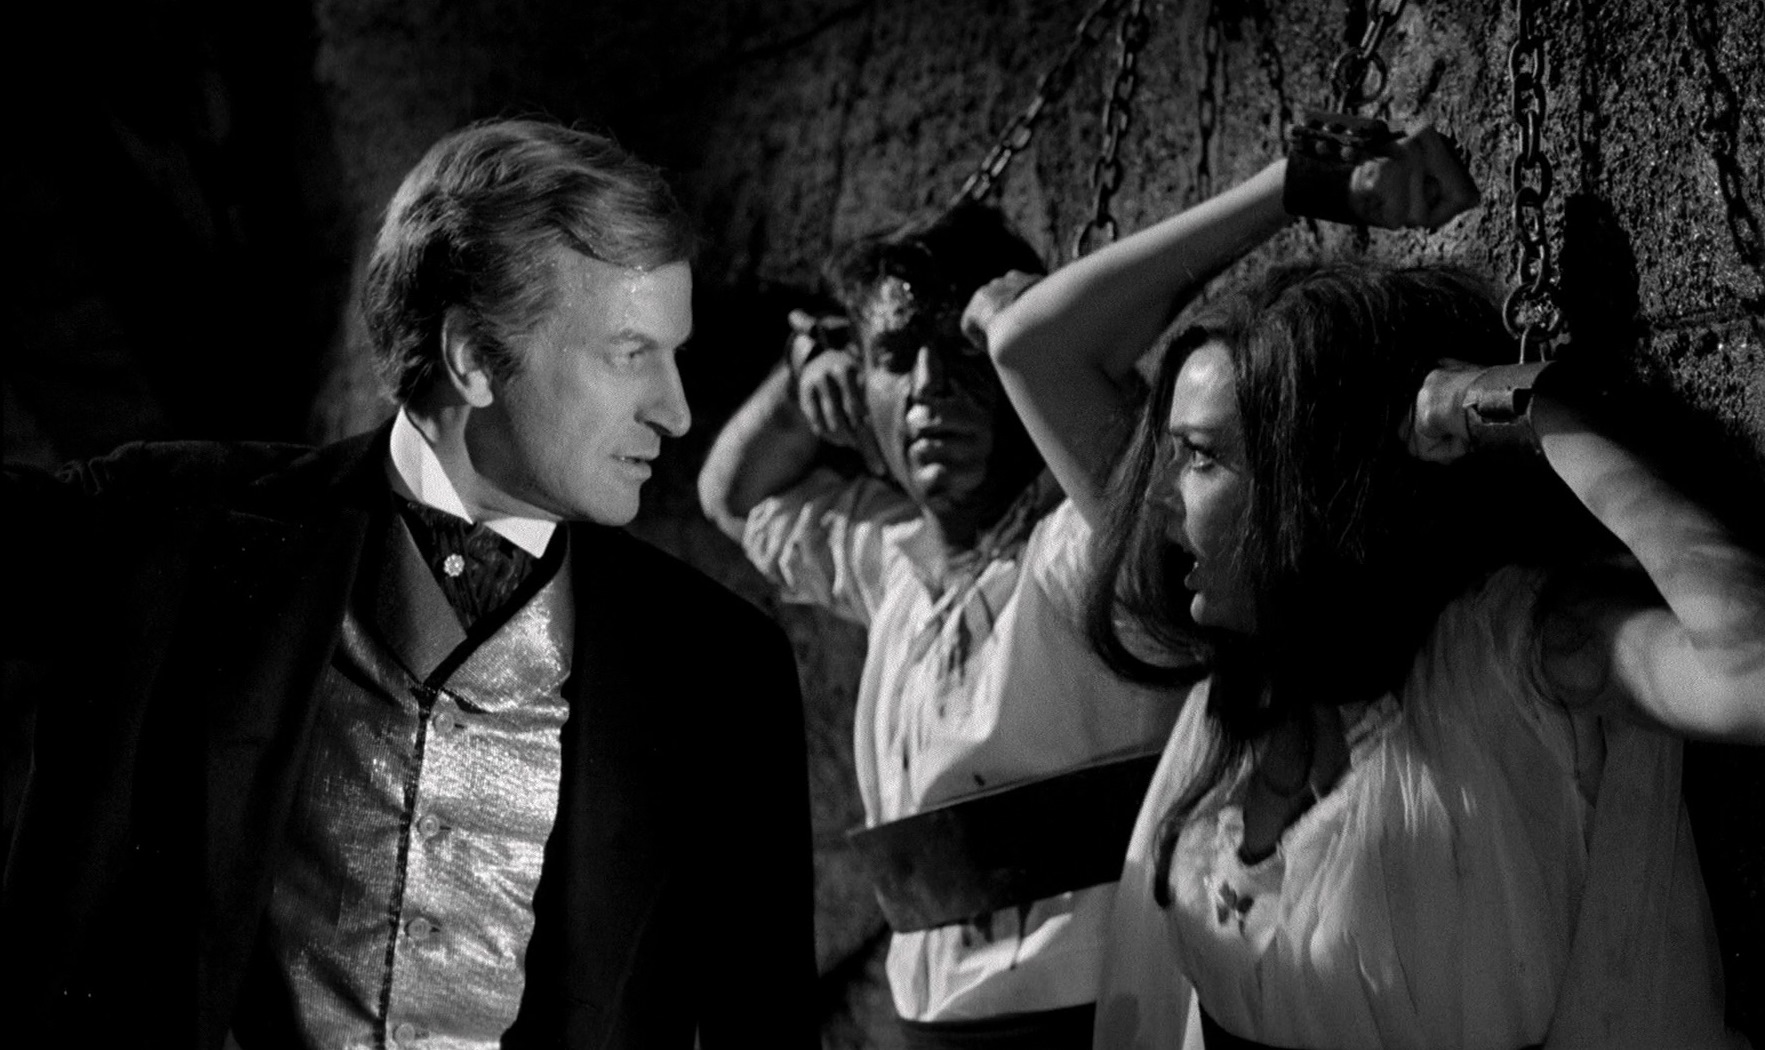 Paul Muller chains Barbara Steele and her lover Rik Battaglia up in the dungeon in Nightmare Castle (1965)